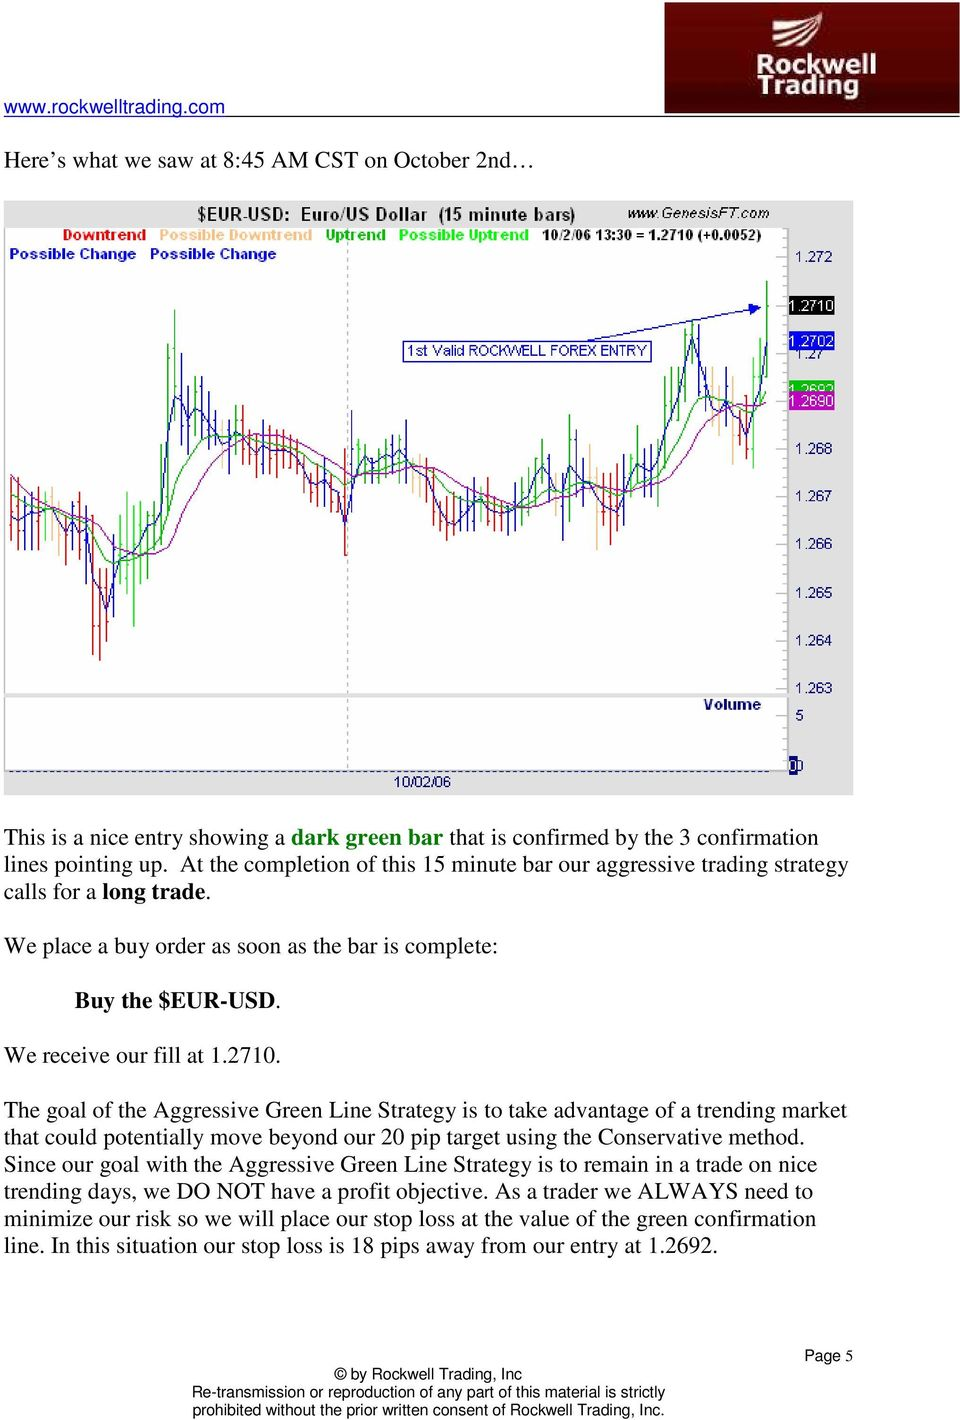 The goal of the Aggressive Green Line Strategy is to take advantage of a trending market that could potentially move beyond our 20 pip target using the Conservative method.